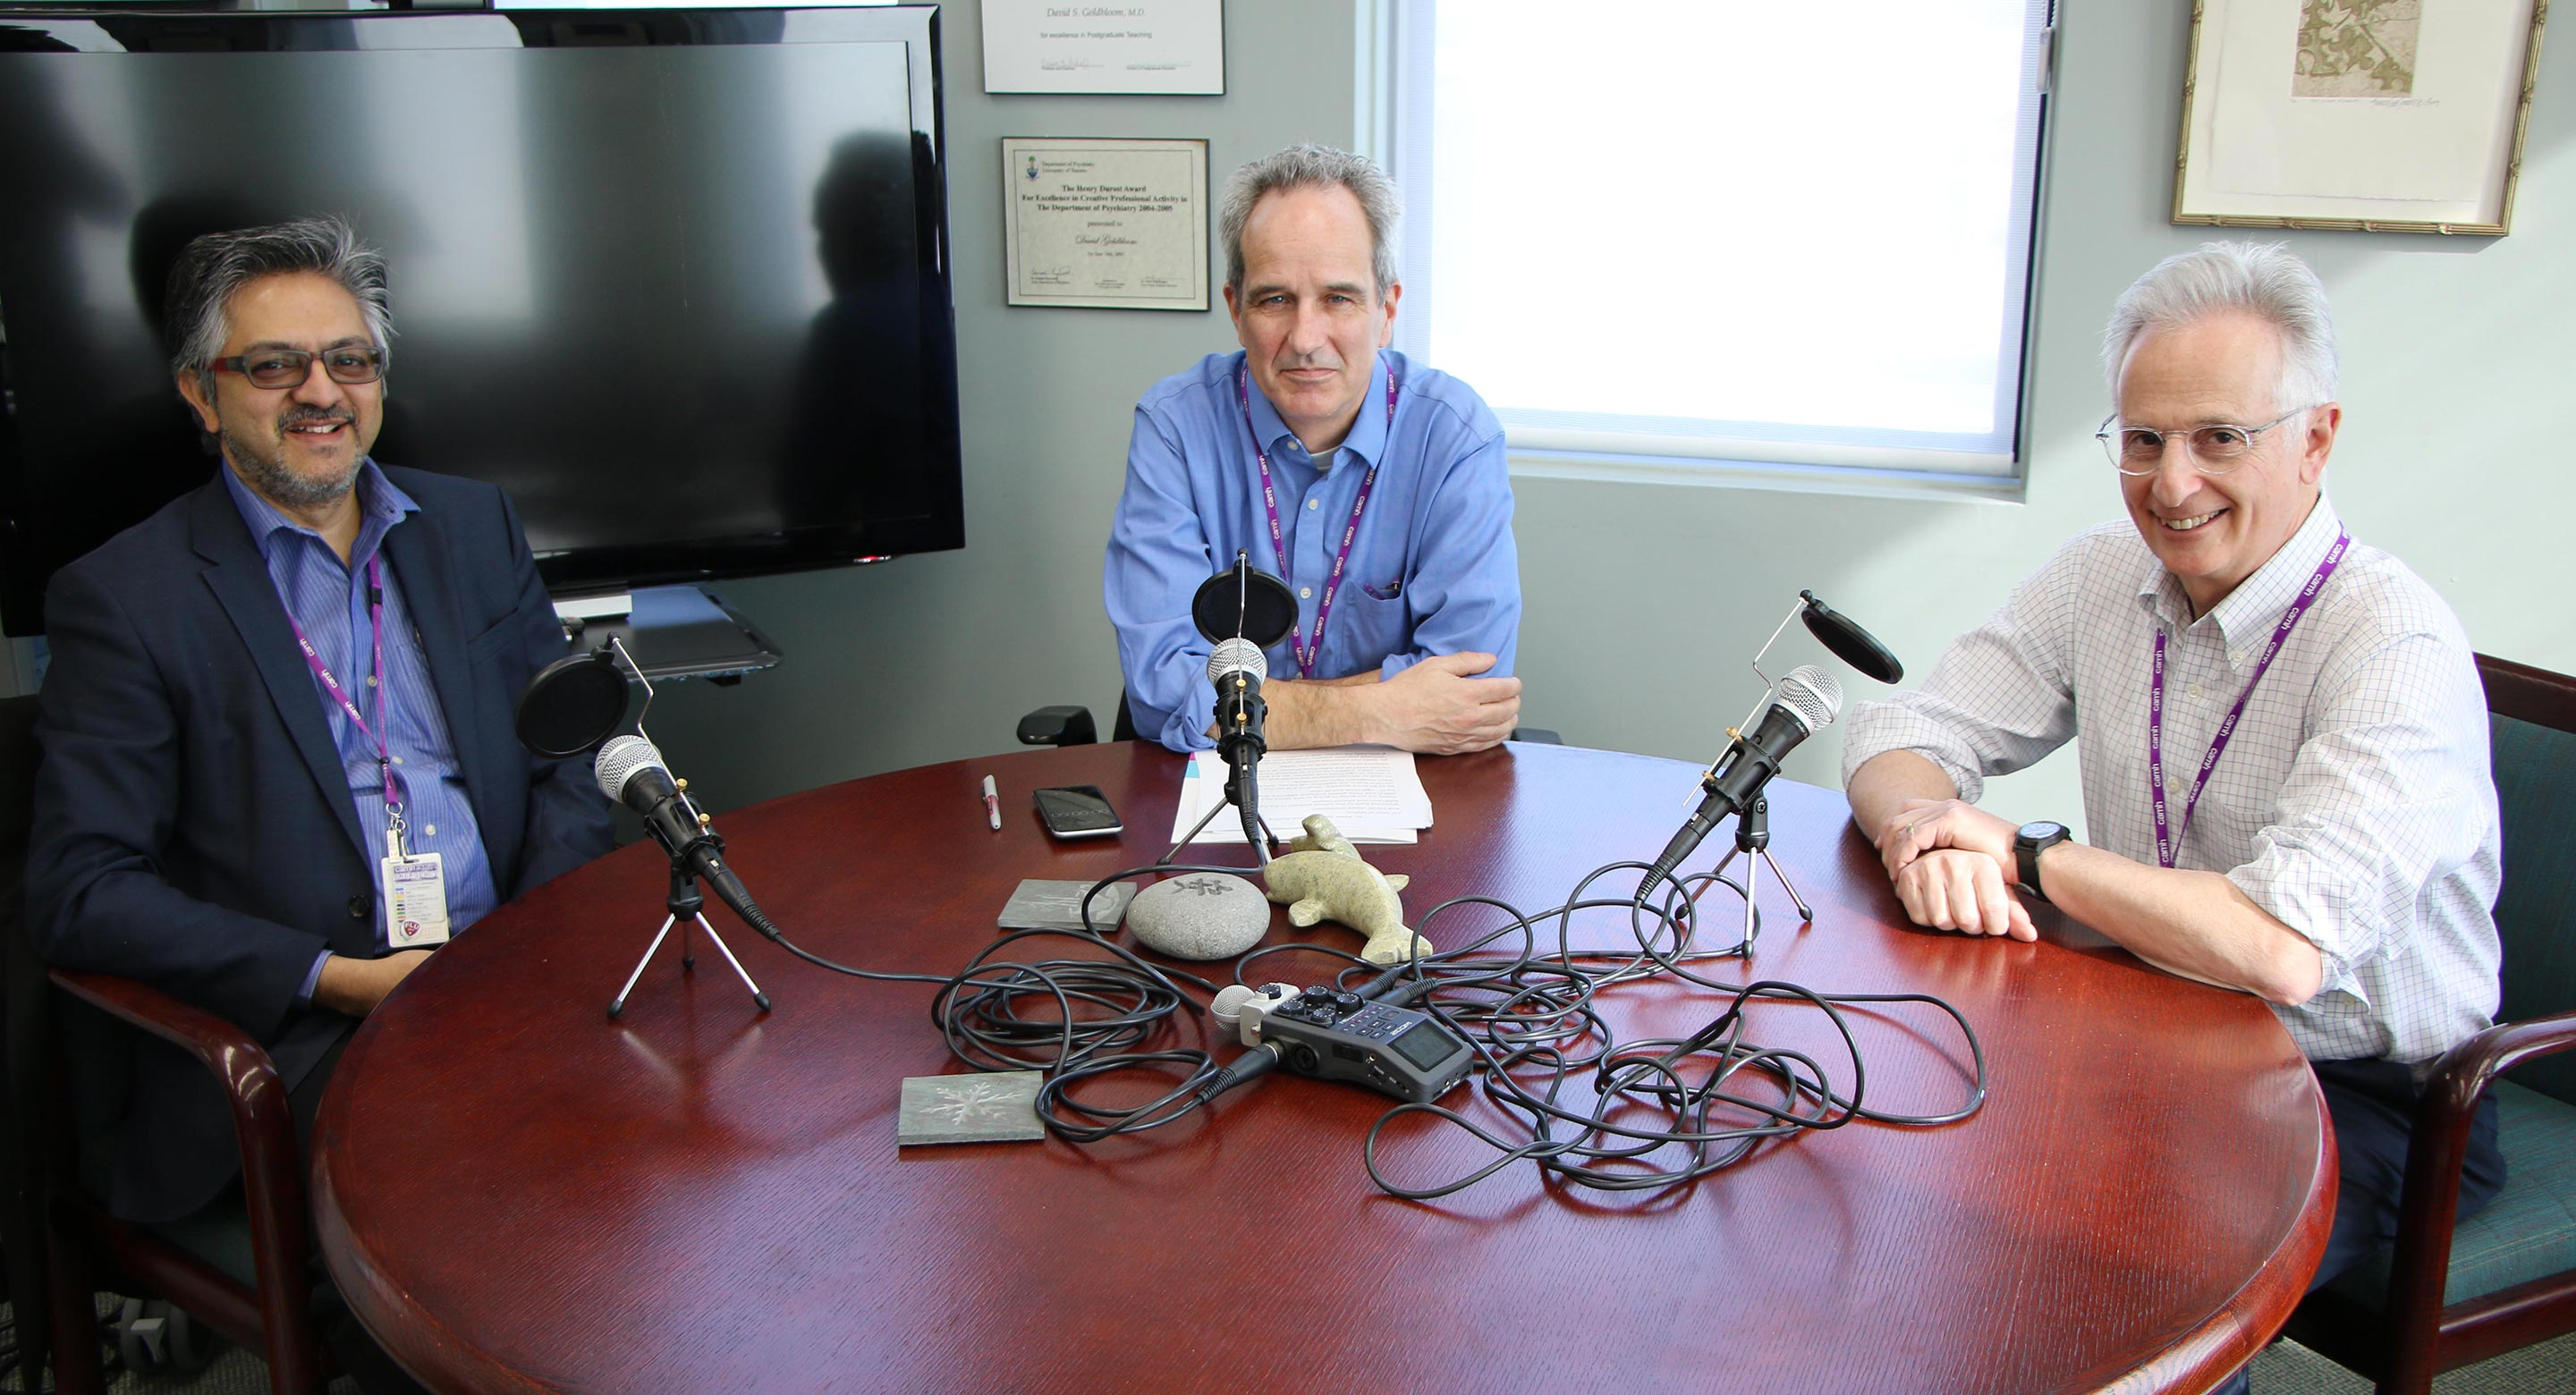 Dr. Peter Selby podcast with Sean O'Malley and Dr. David Goldbloom